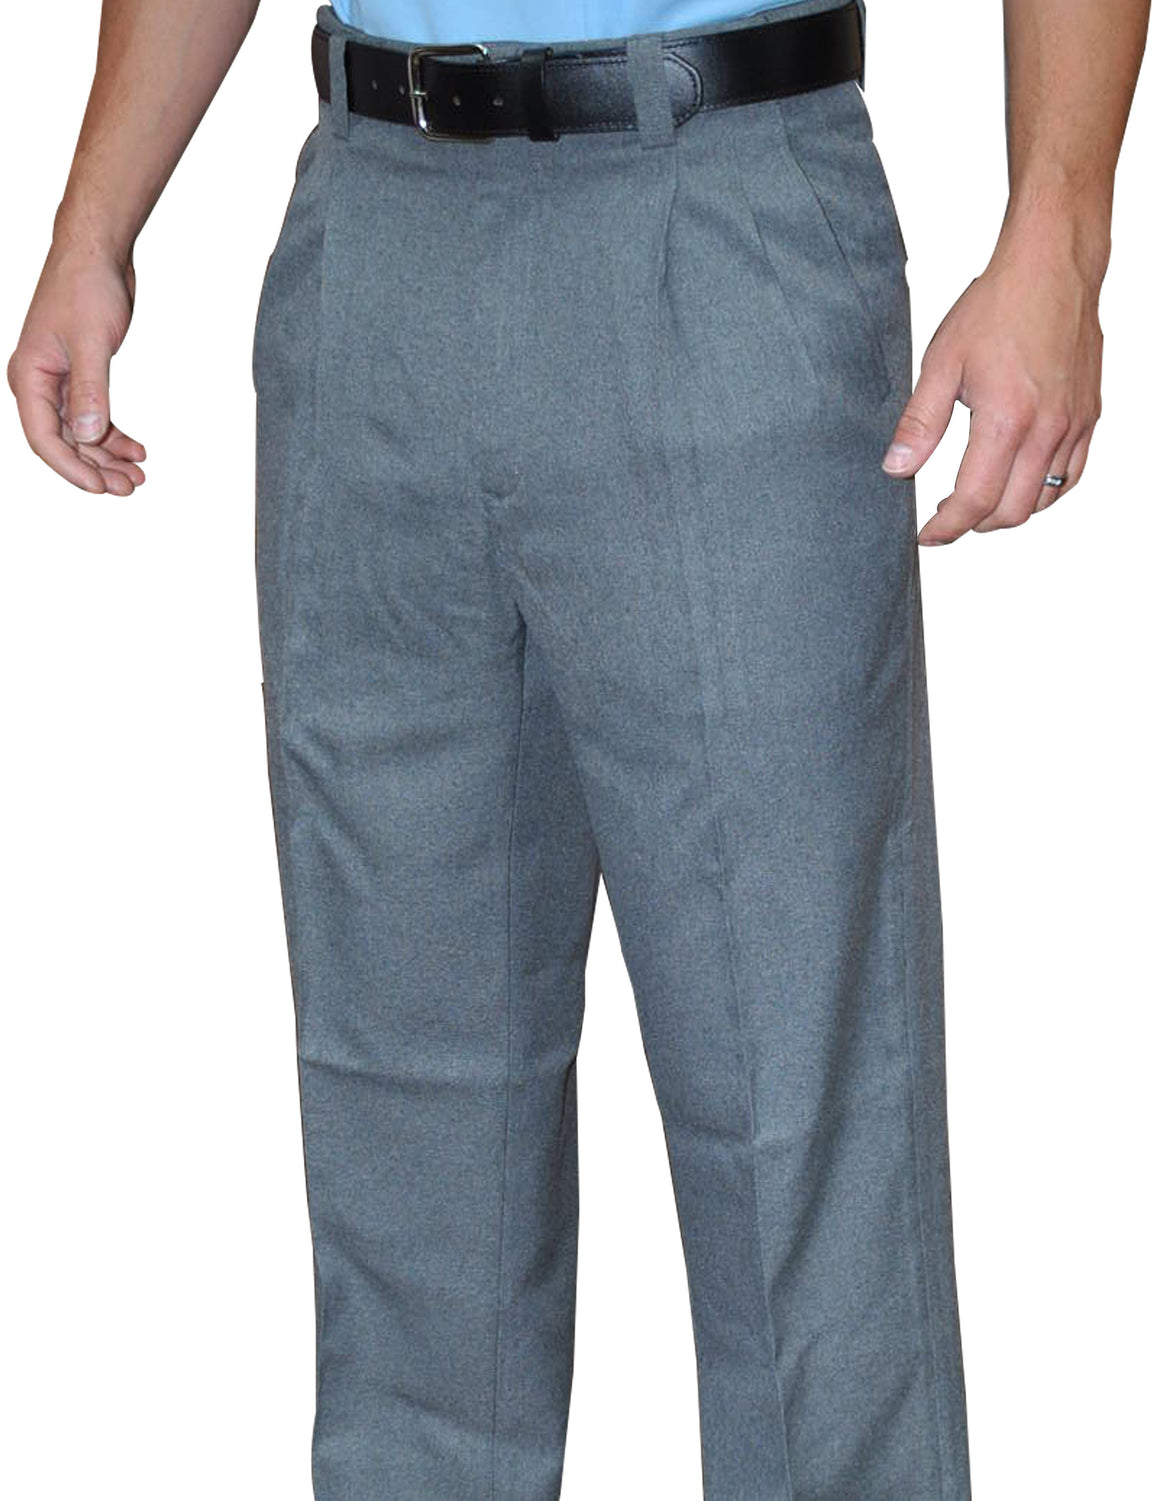 Smitty Umpire Combo Pants - Expansion Waist - Pleated - Heather Grey